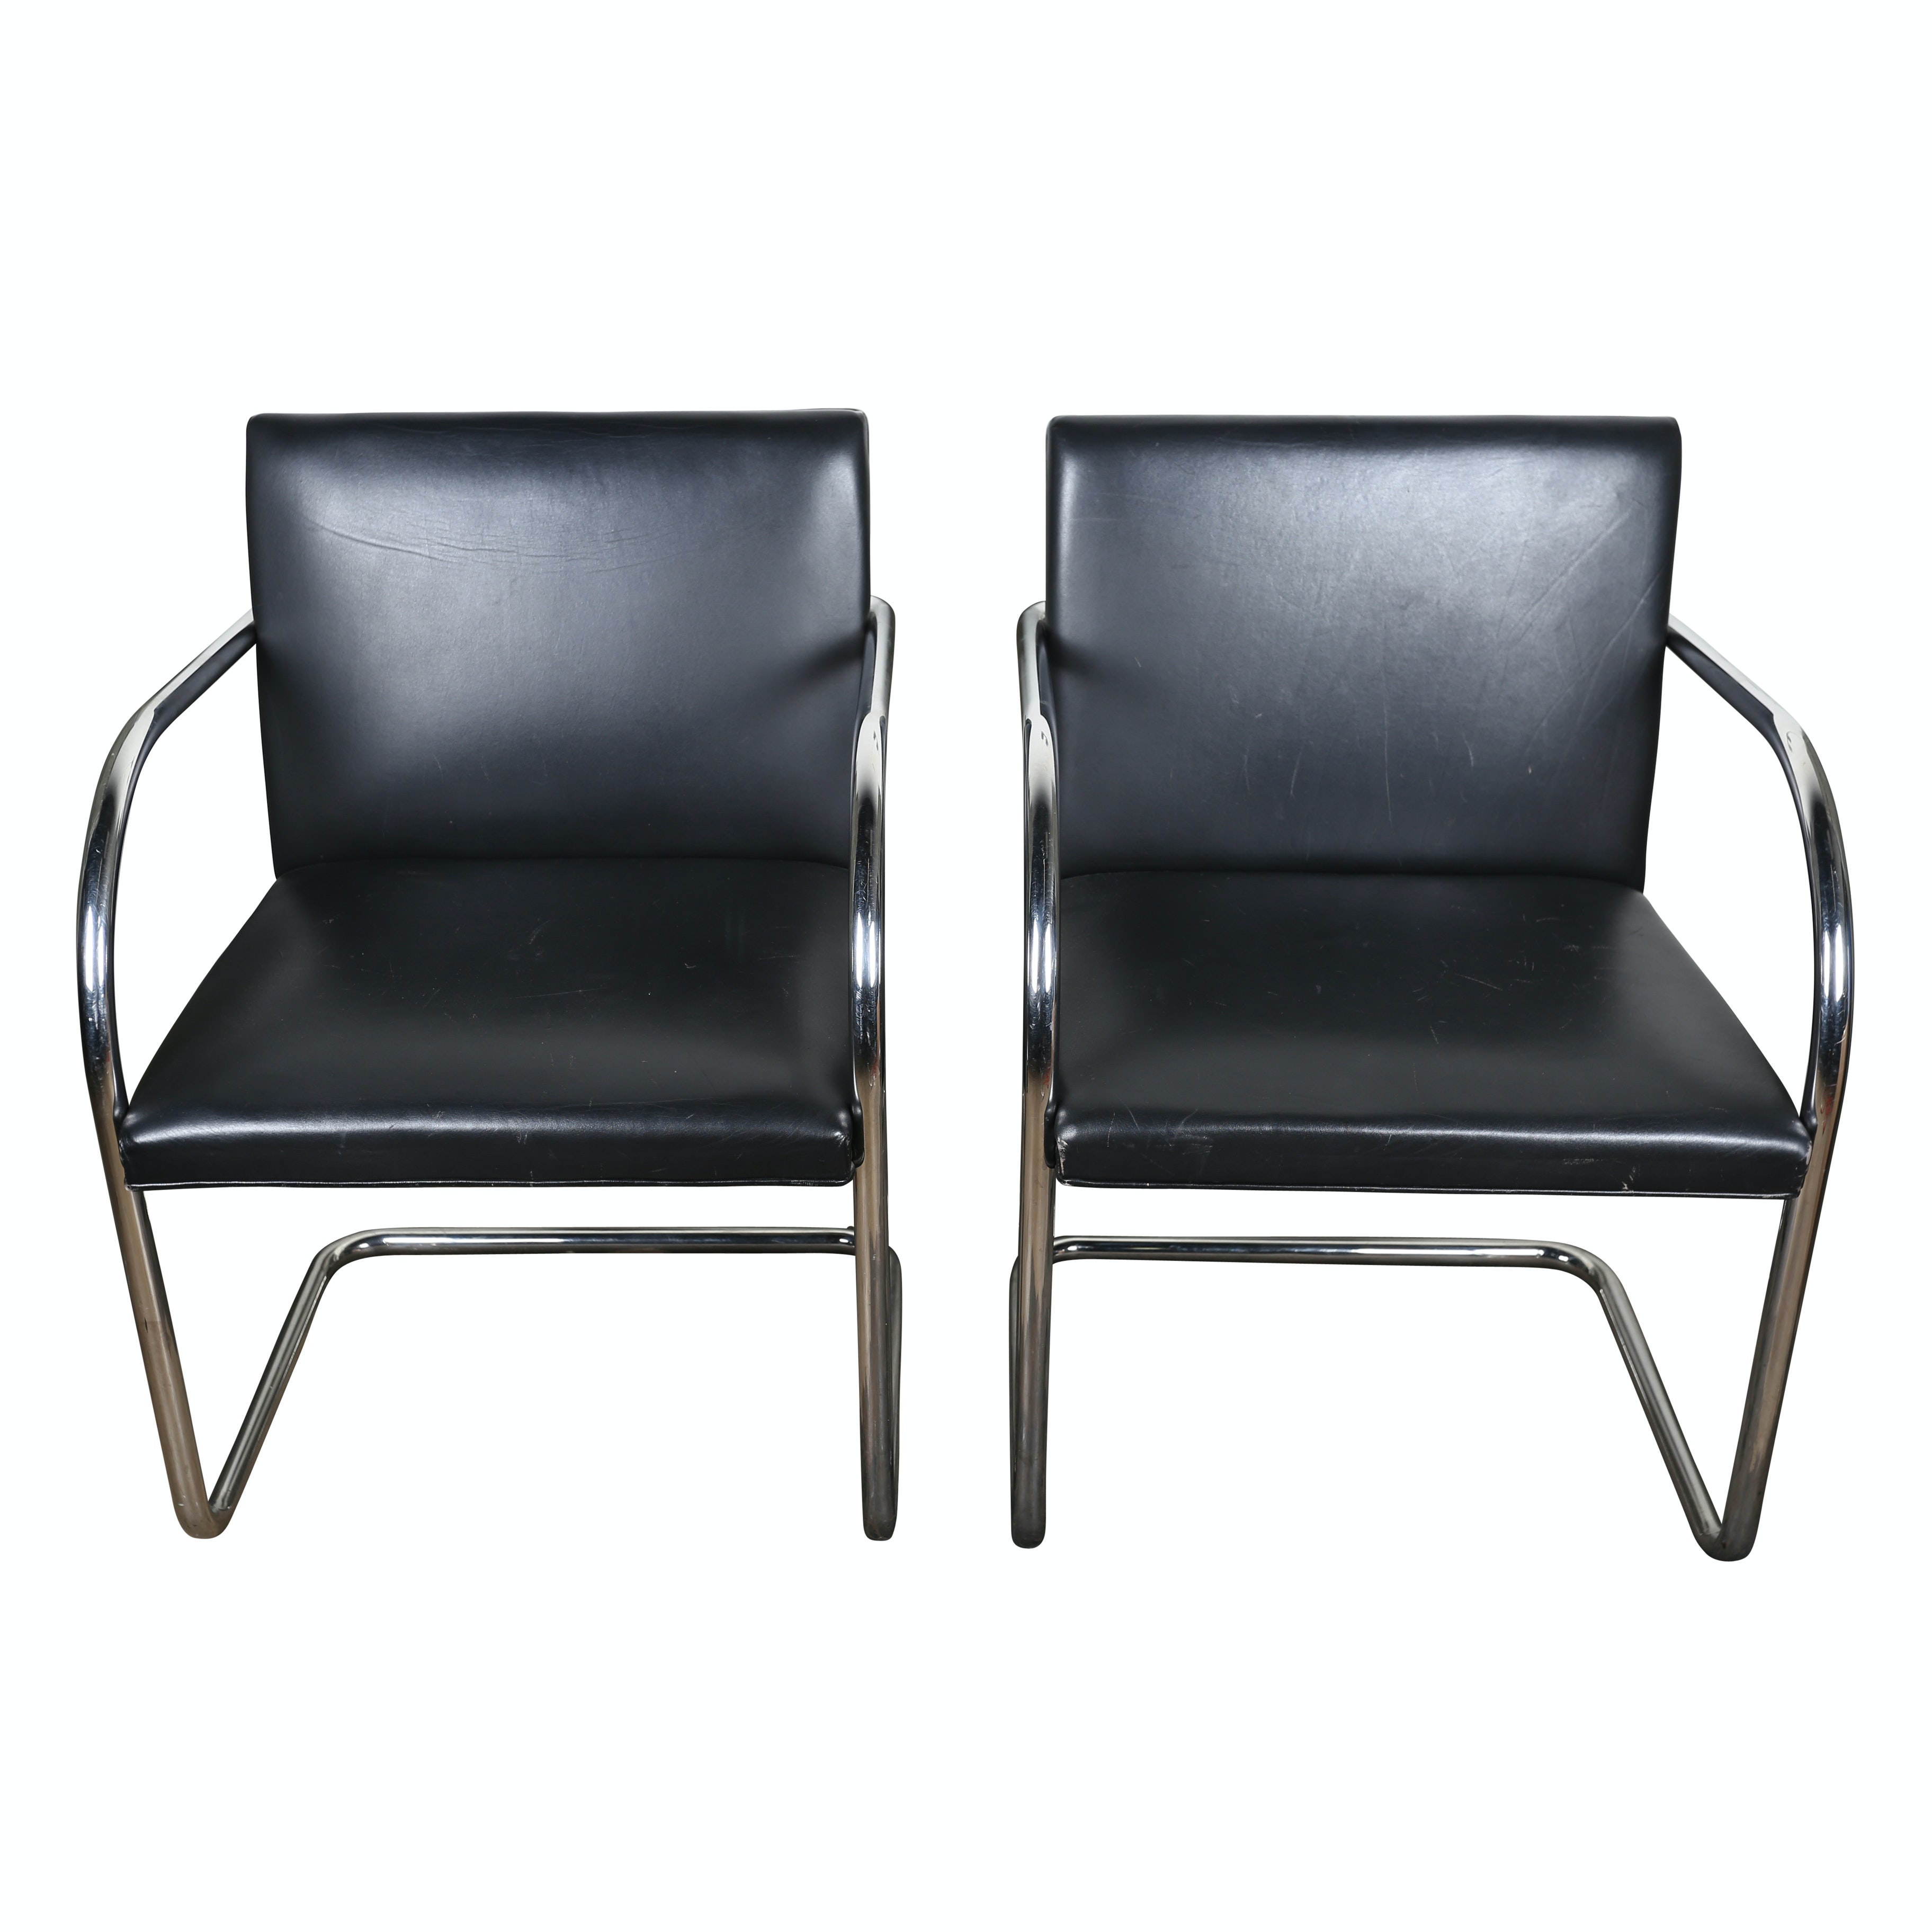 """""""Brno"""" Leather and Chrome Armchairs by Mies van der Rohe for Knoll, Late 20th C"""